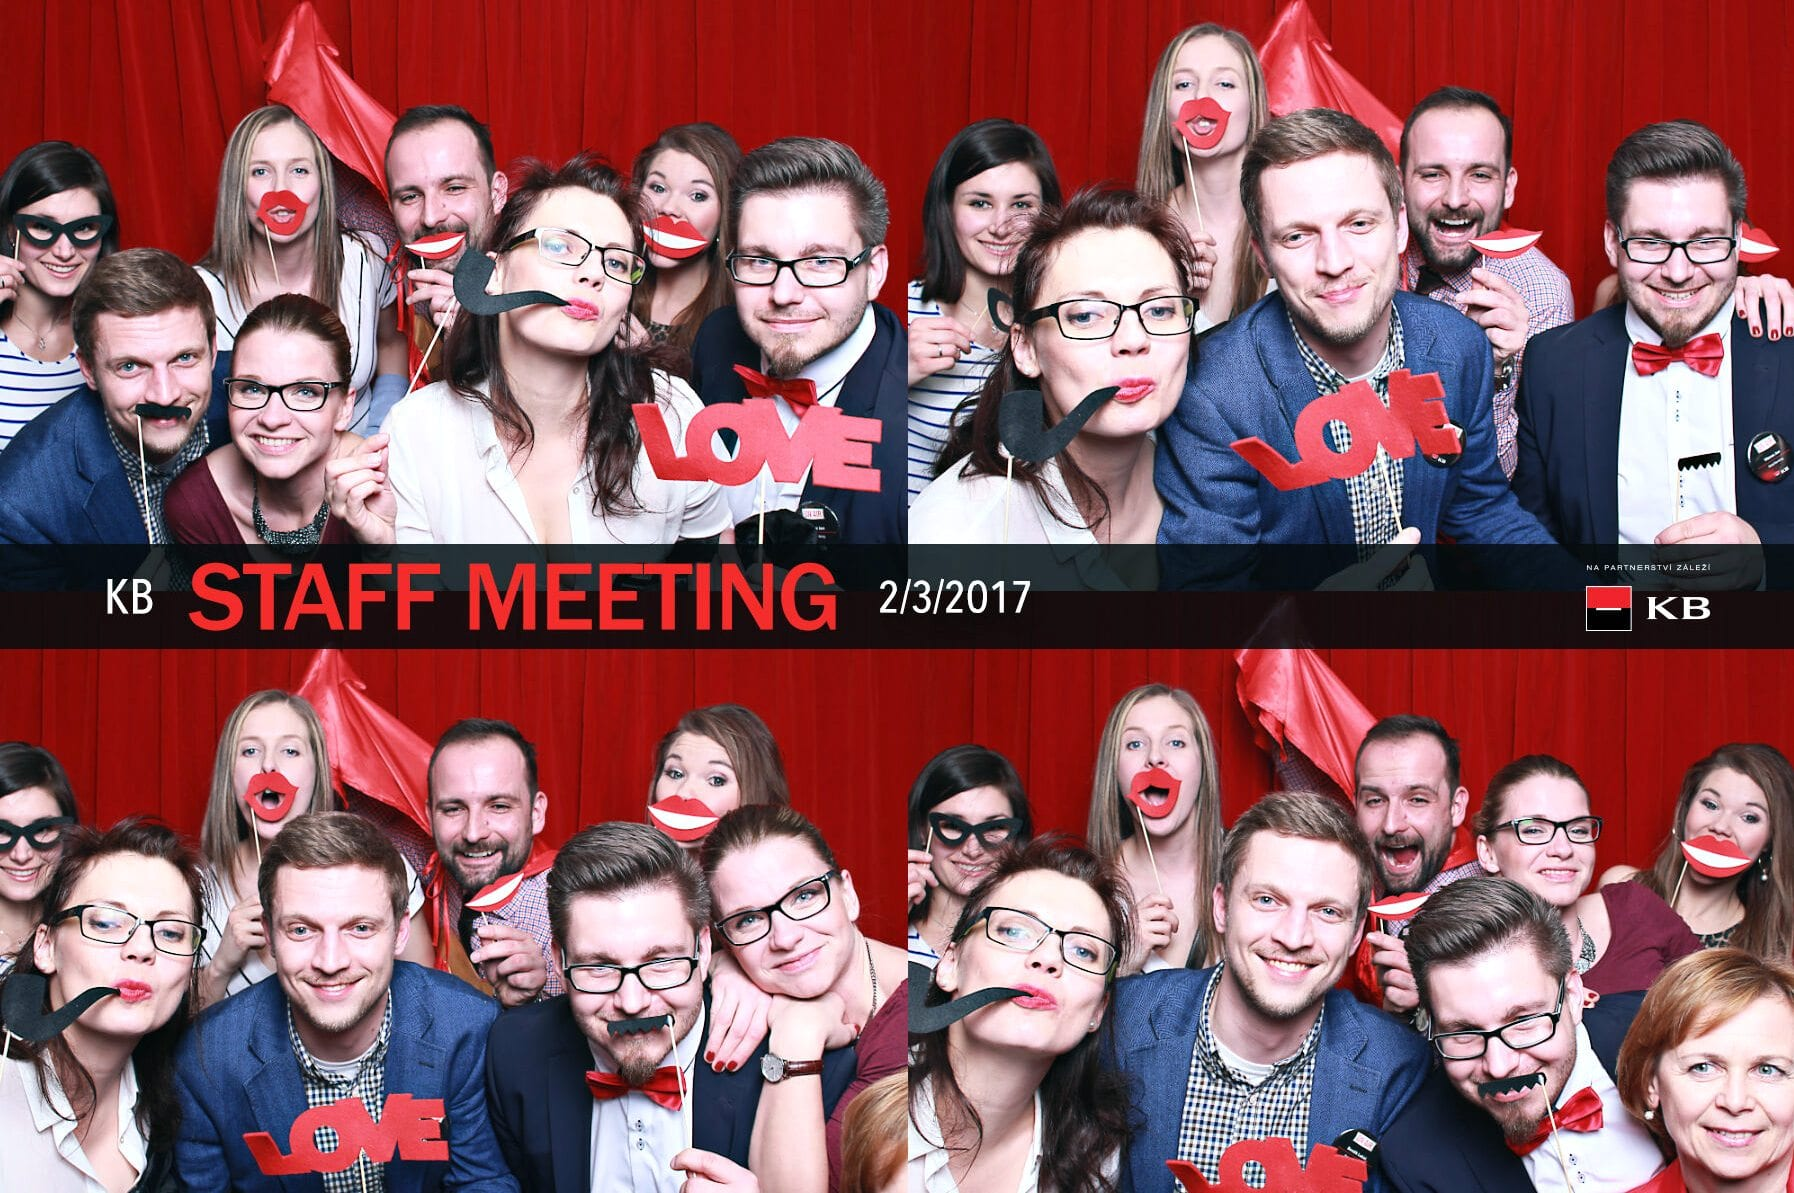 fotokoutek-kb-staff-meeting-2-3-2017-226397